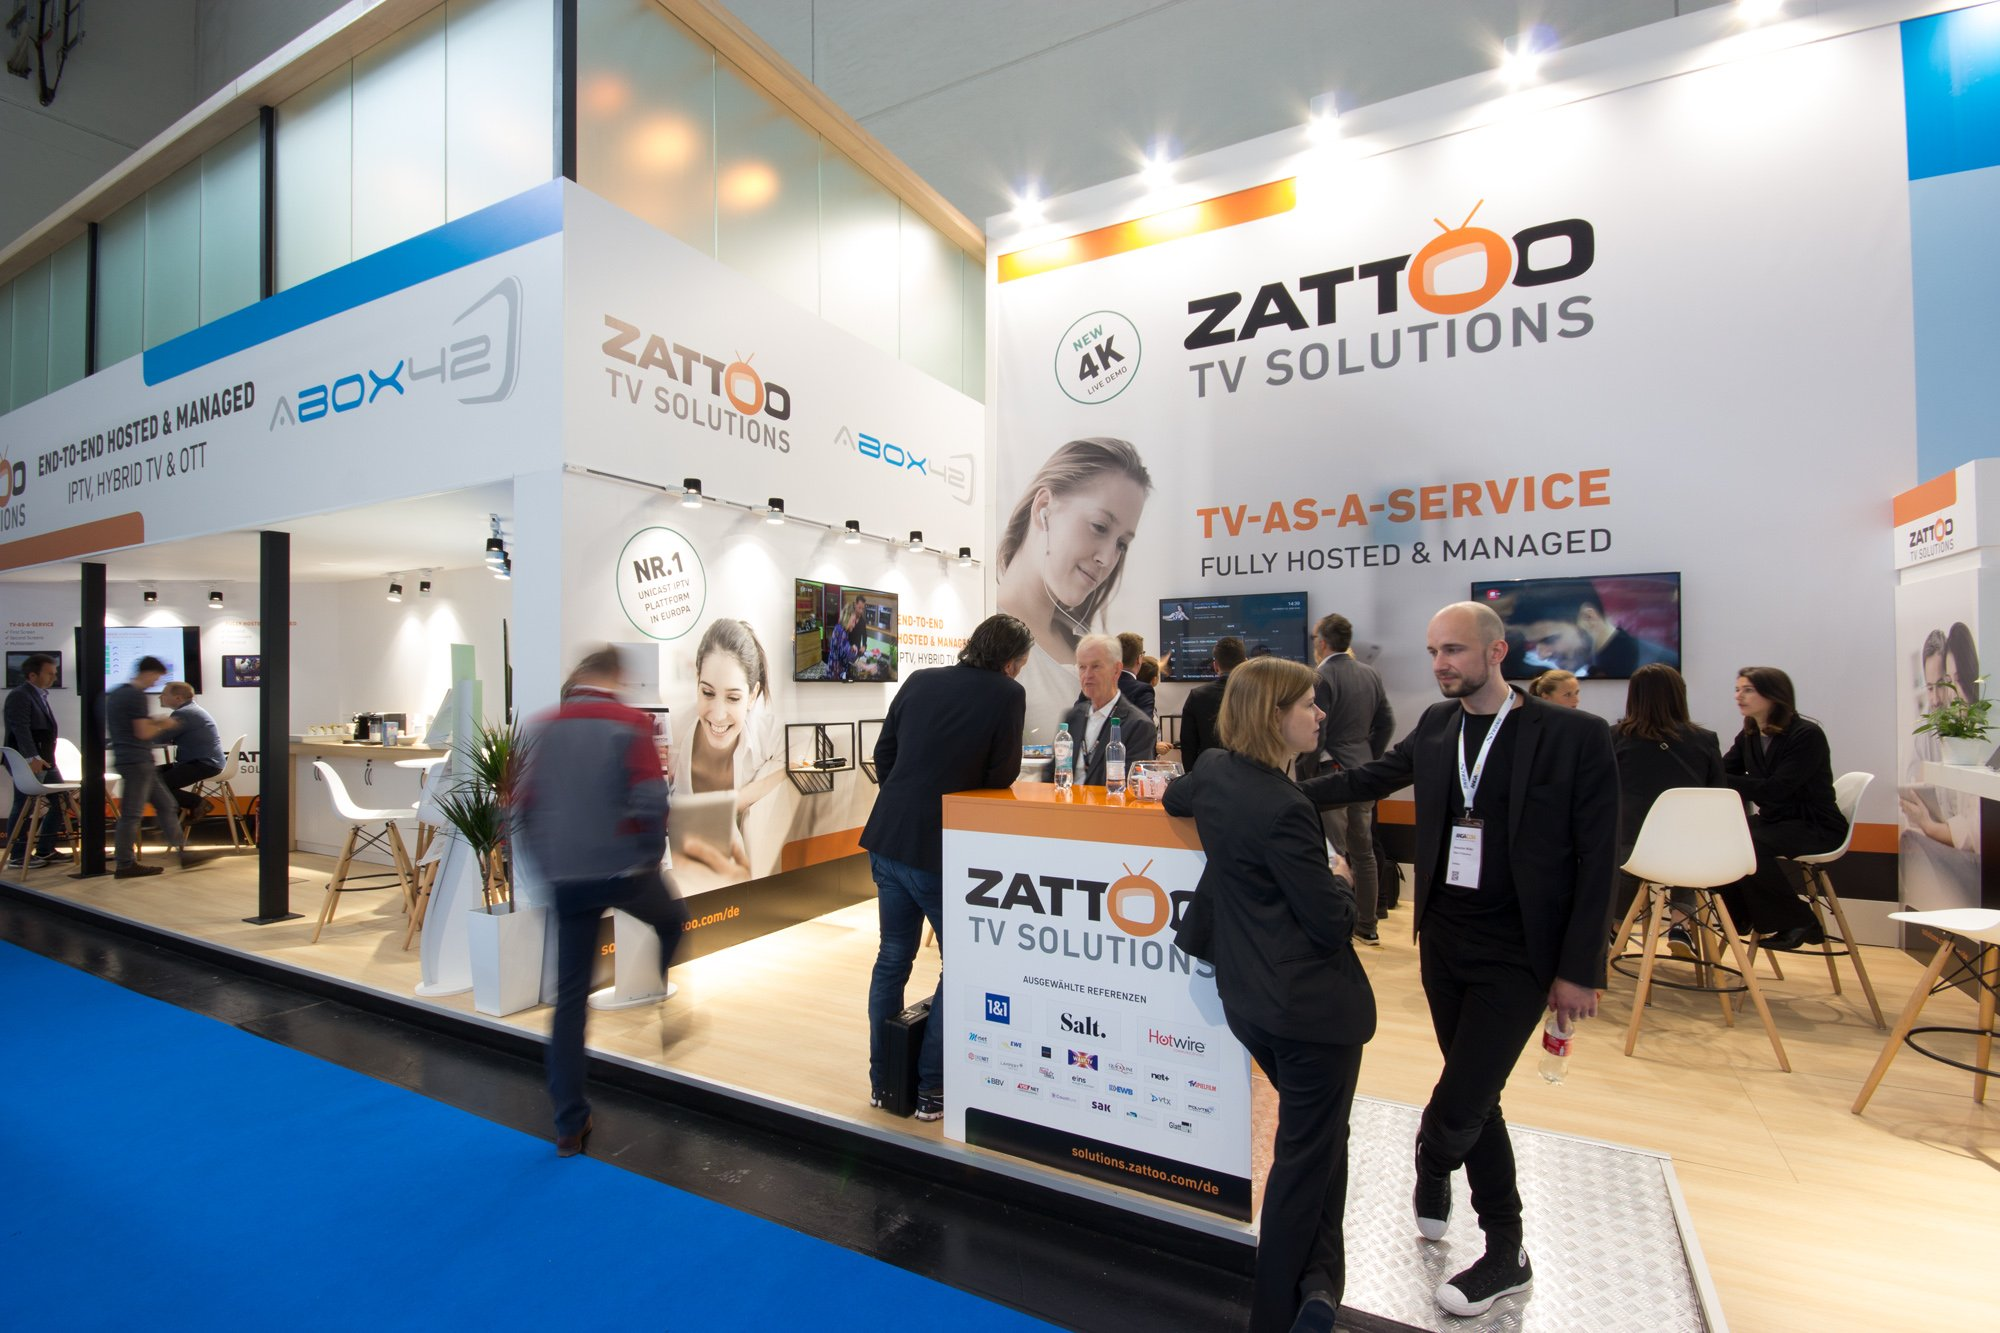 exhibition stand for ZATTOO and ABOX